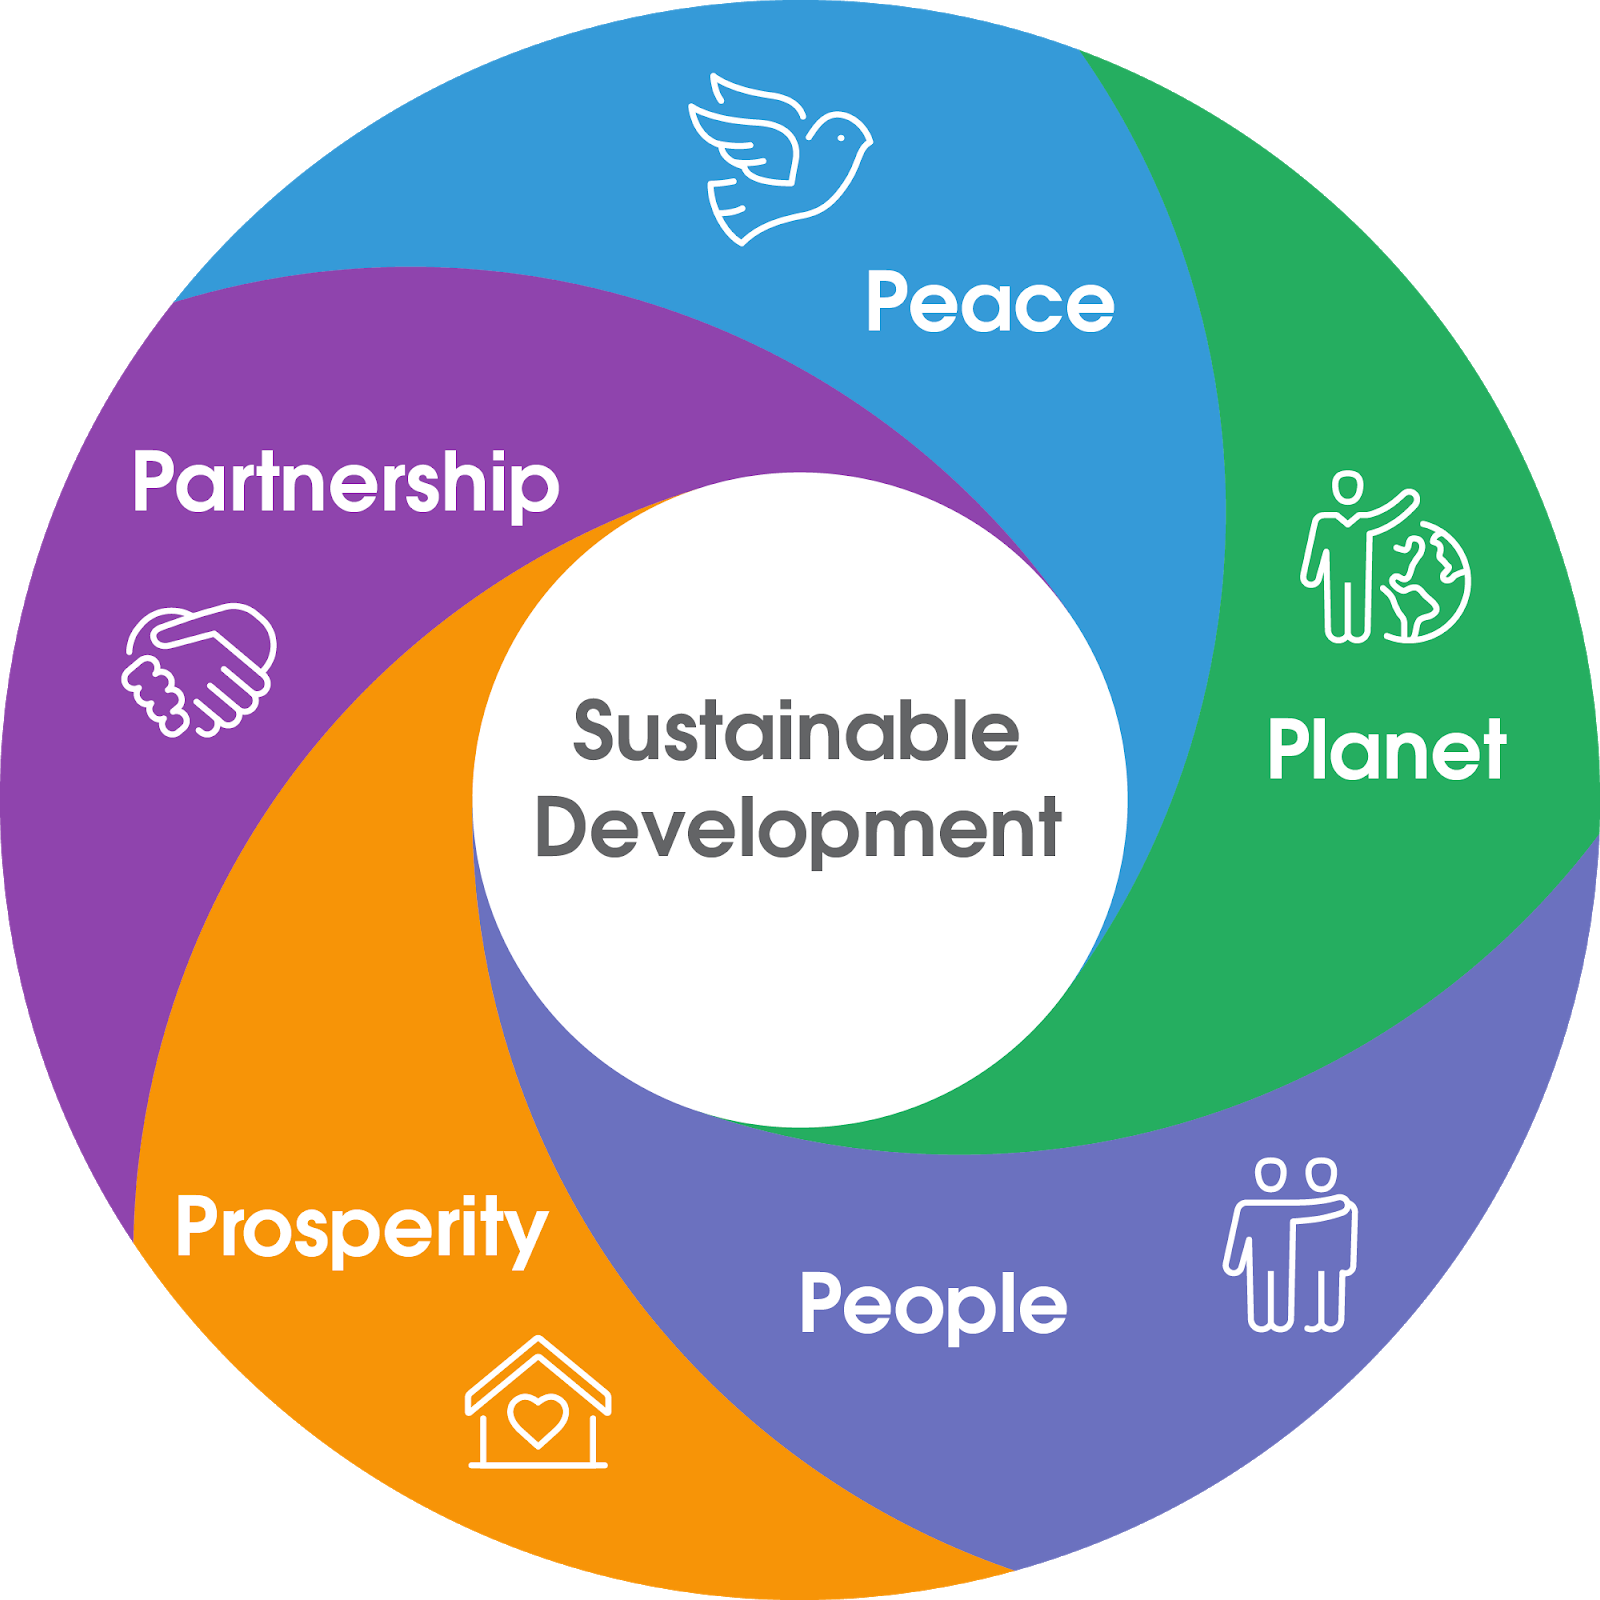 The 5 P's, or dimensions, of Sustainable Development and how they fit together